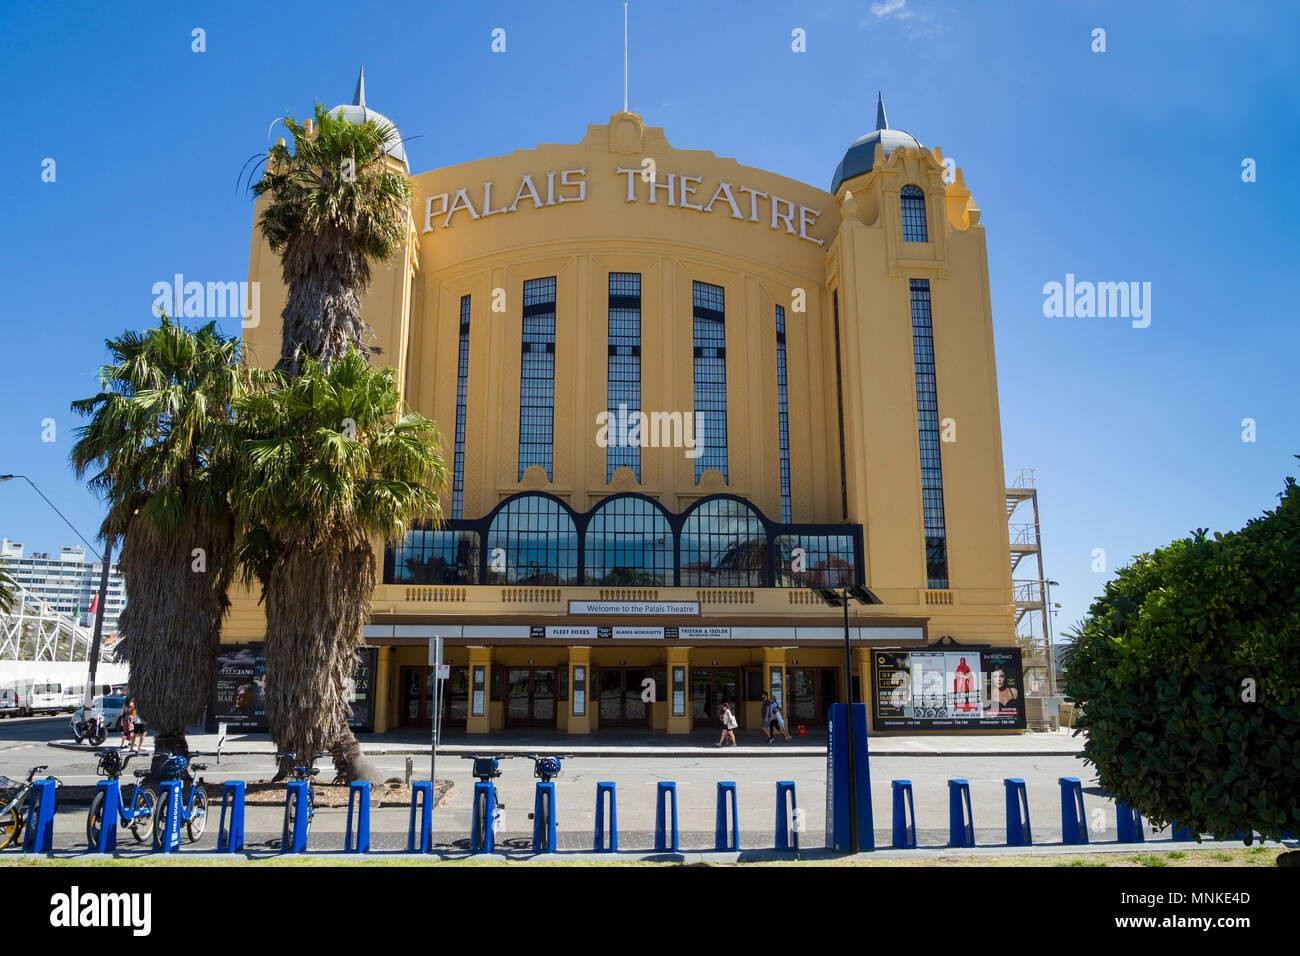 Art Deco Cinema Hall Stock Photos & Art Deco Cinema Hall Stock